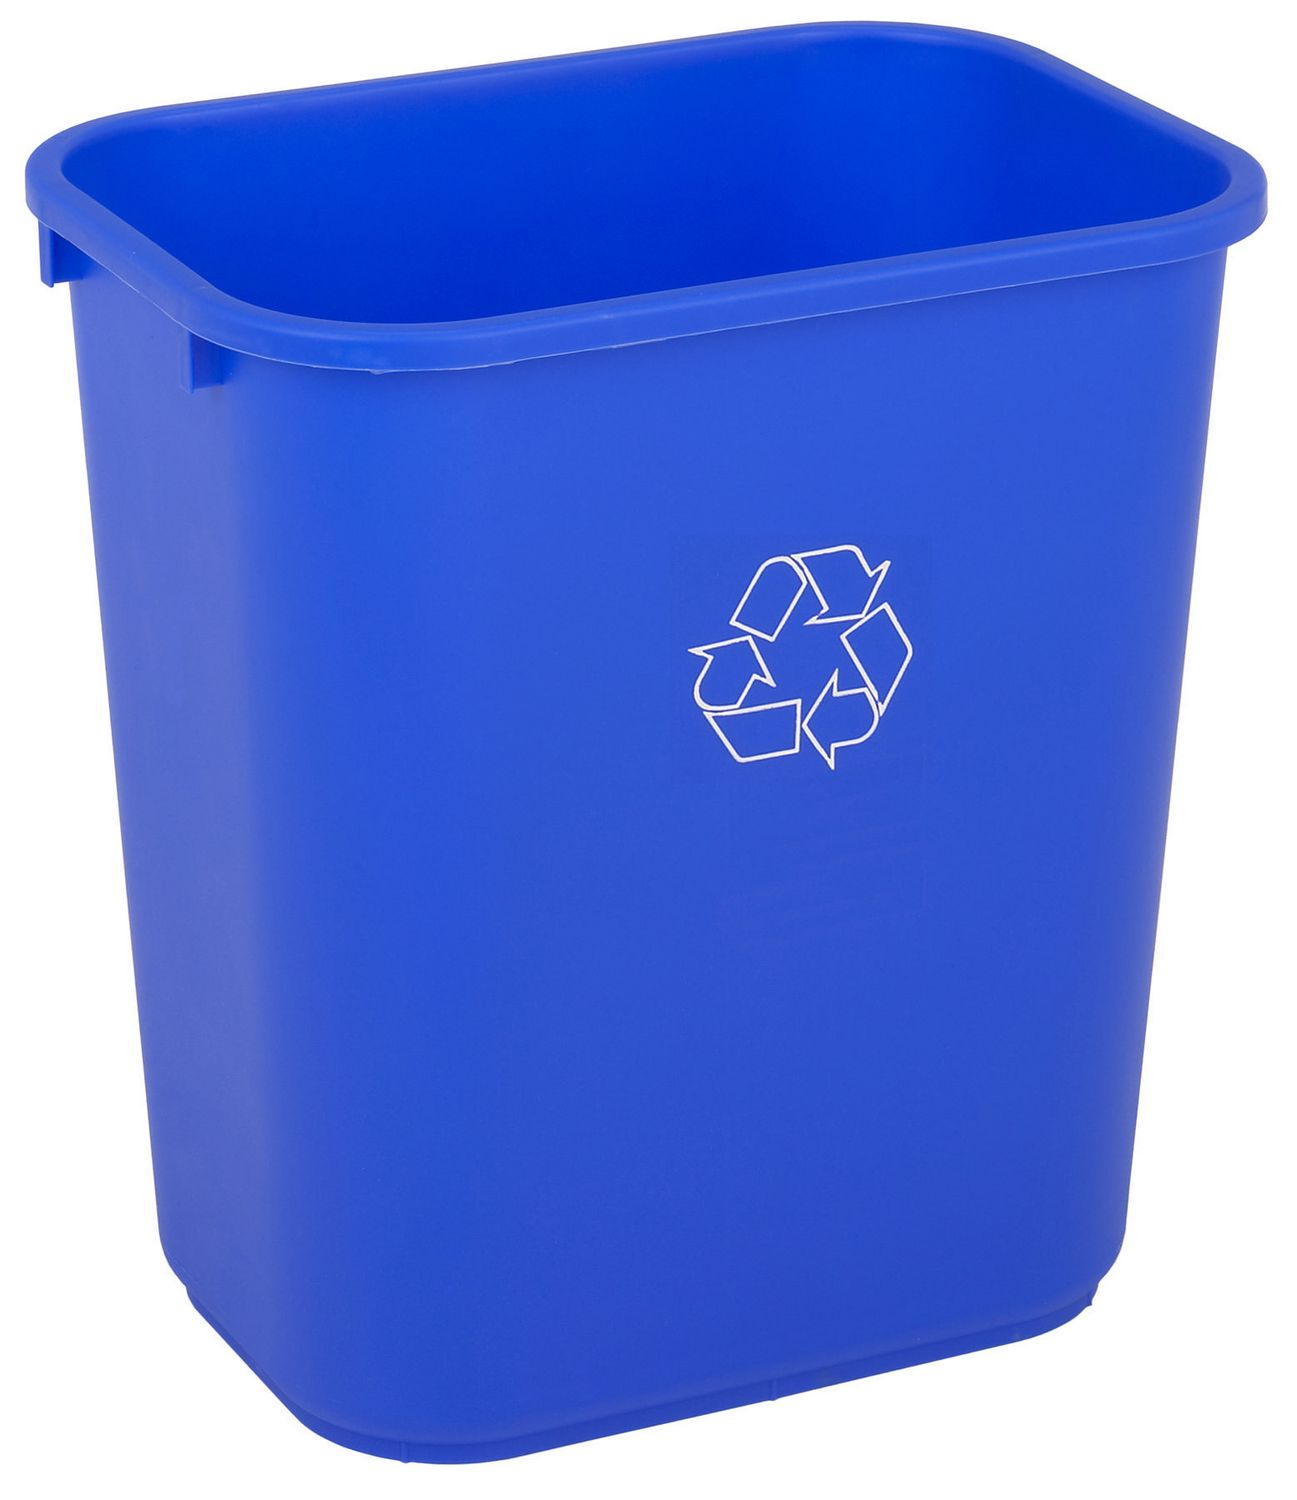 1297x1500 Recycle Bins Amp Garbage Cans For Organizing Home